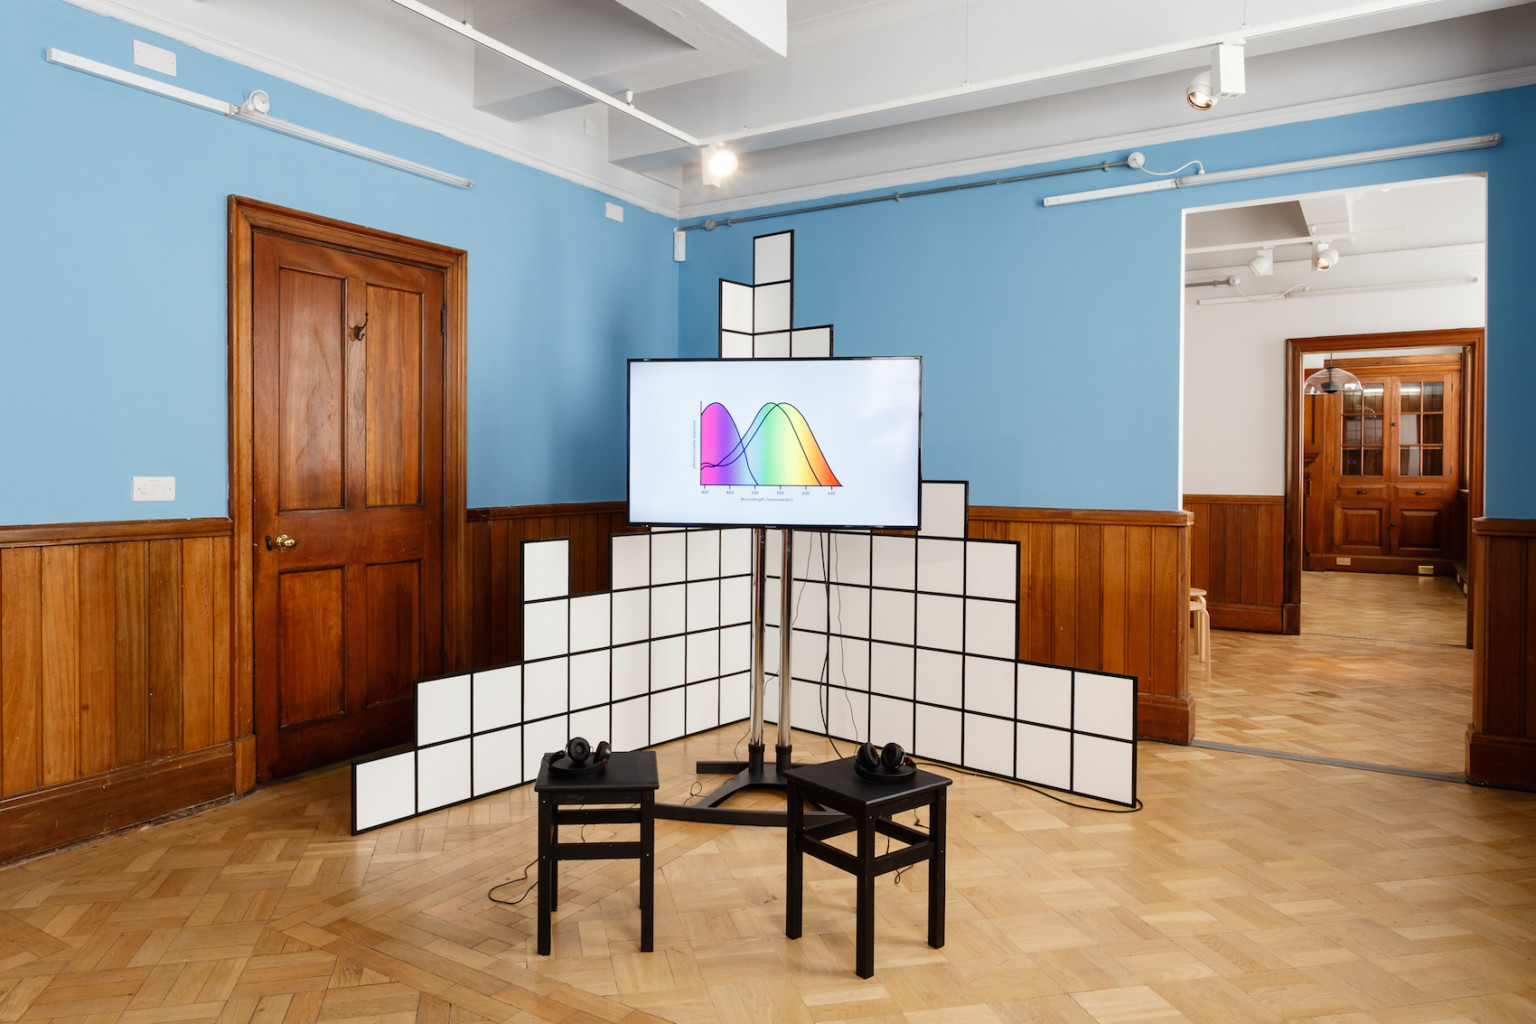 Amelia Crouch, Spectral Evidence, 2016, The Tetley, Leeds, Image courtesy of the artist. Photo: Jules Lister